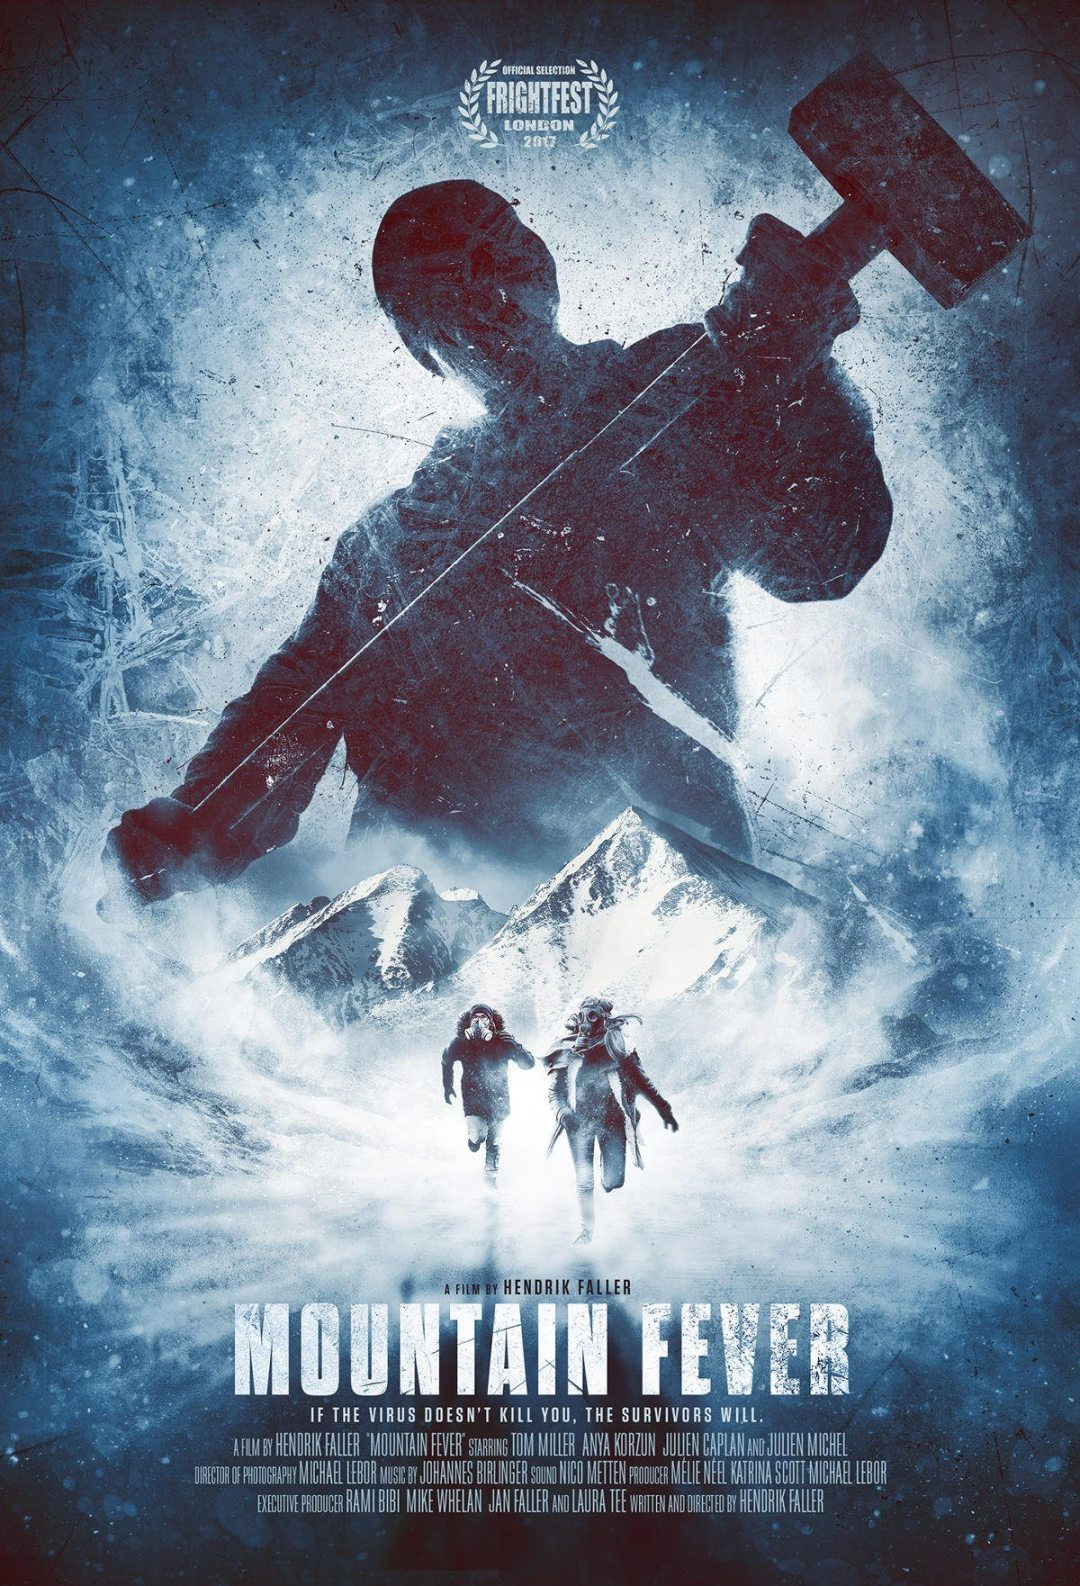 This Trailer Will Give You a 'Mountain Fever'